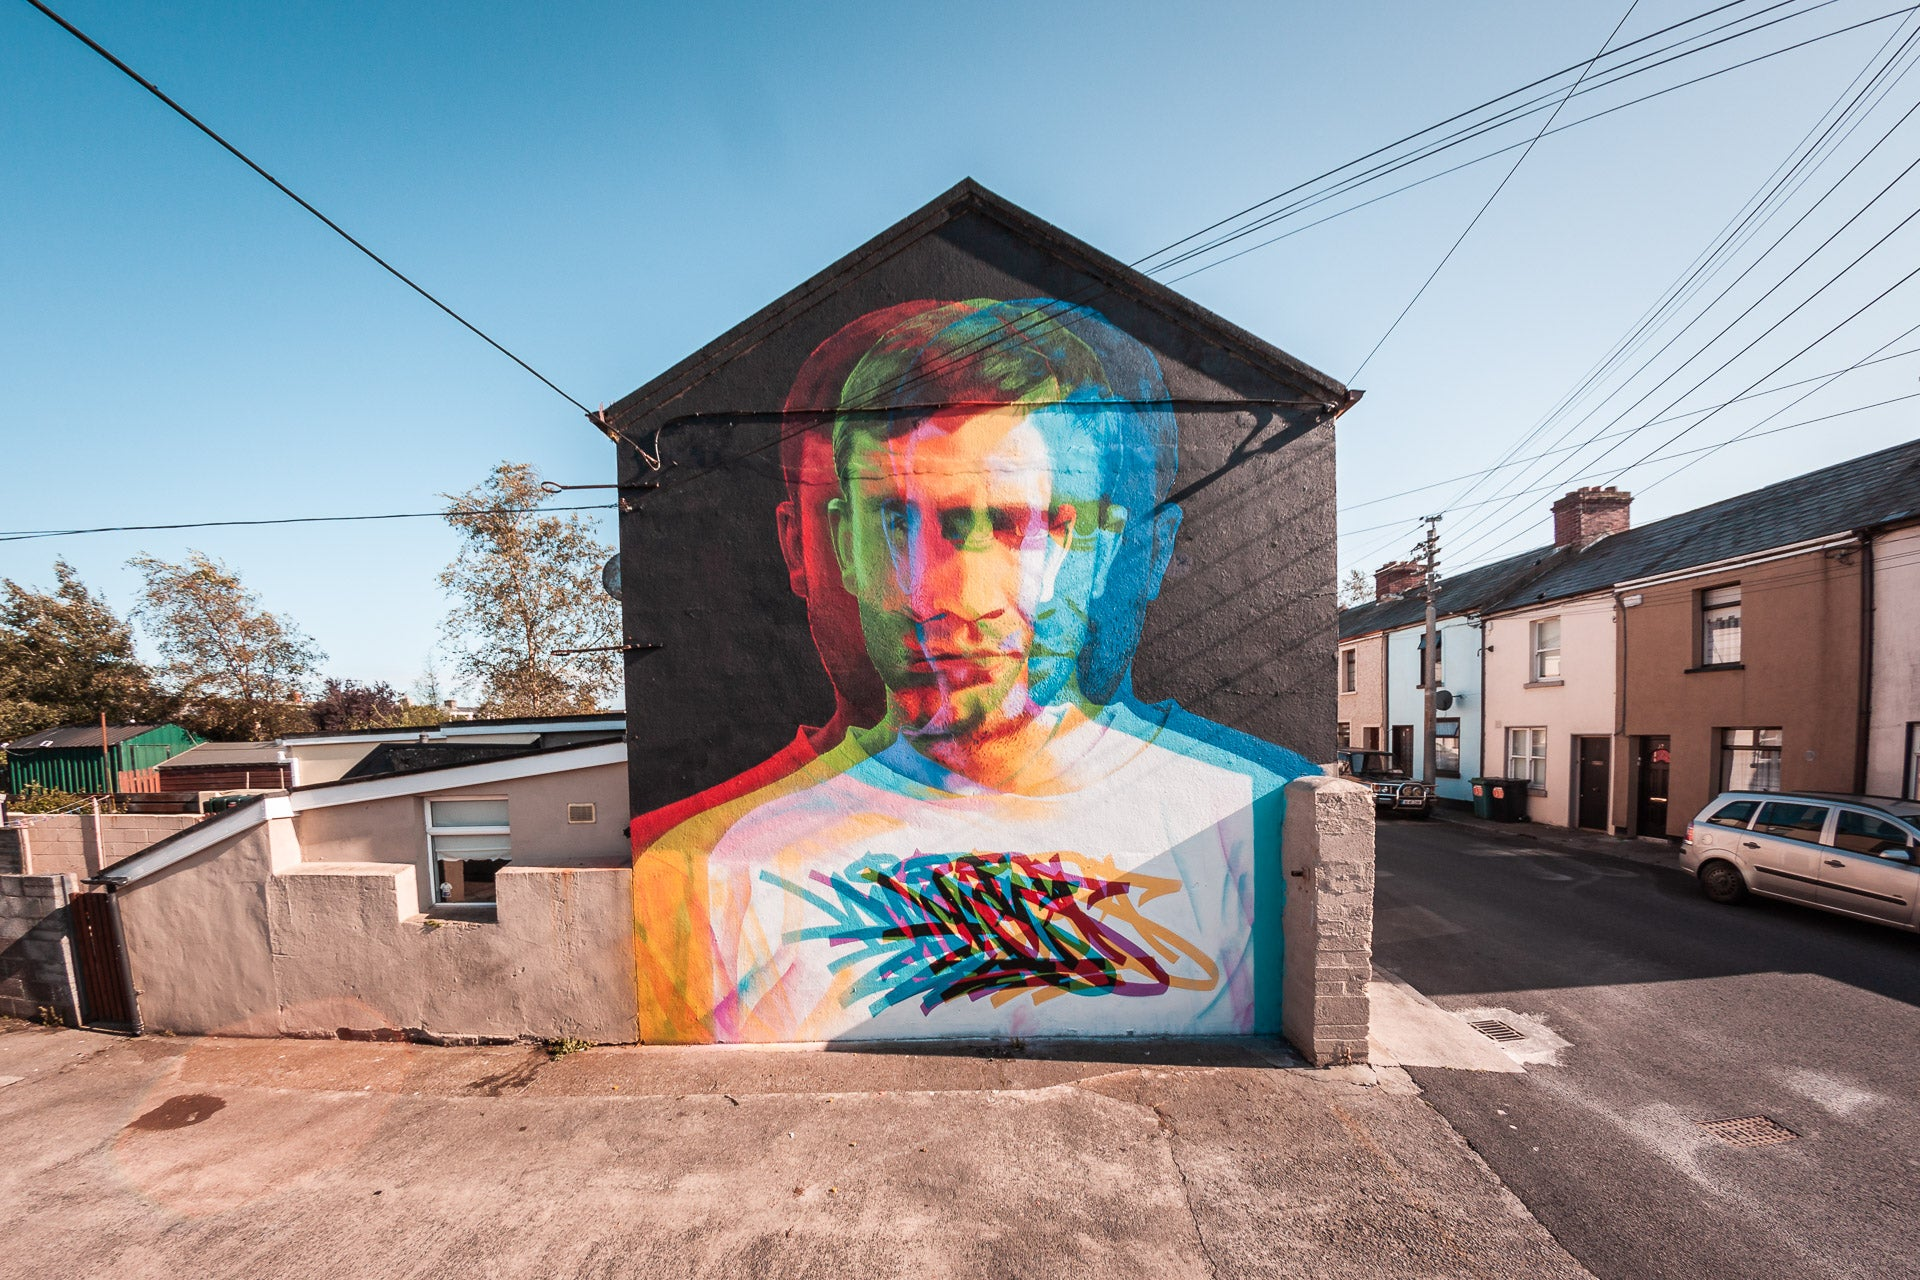 Artwork from artist Aches created for Waterford Walls 2019.